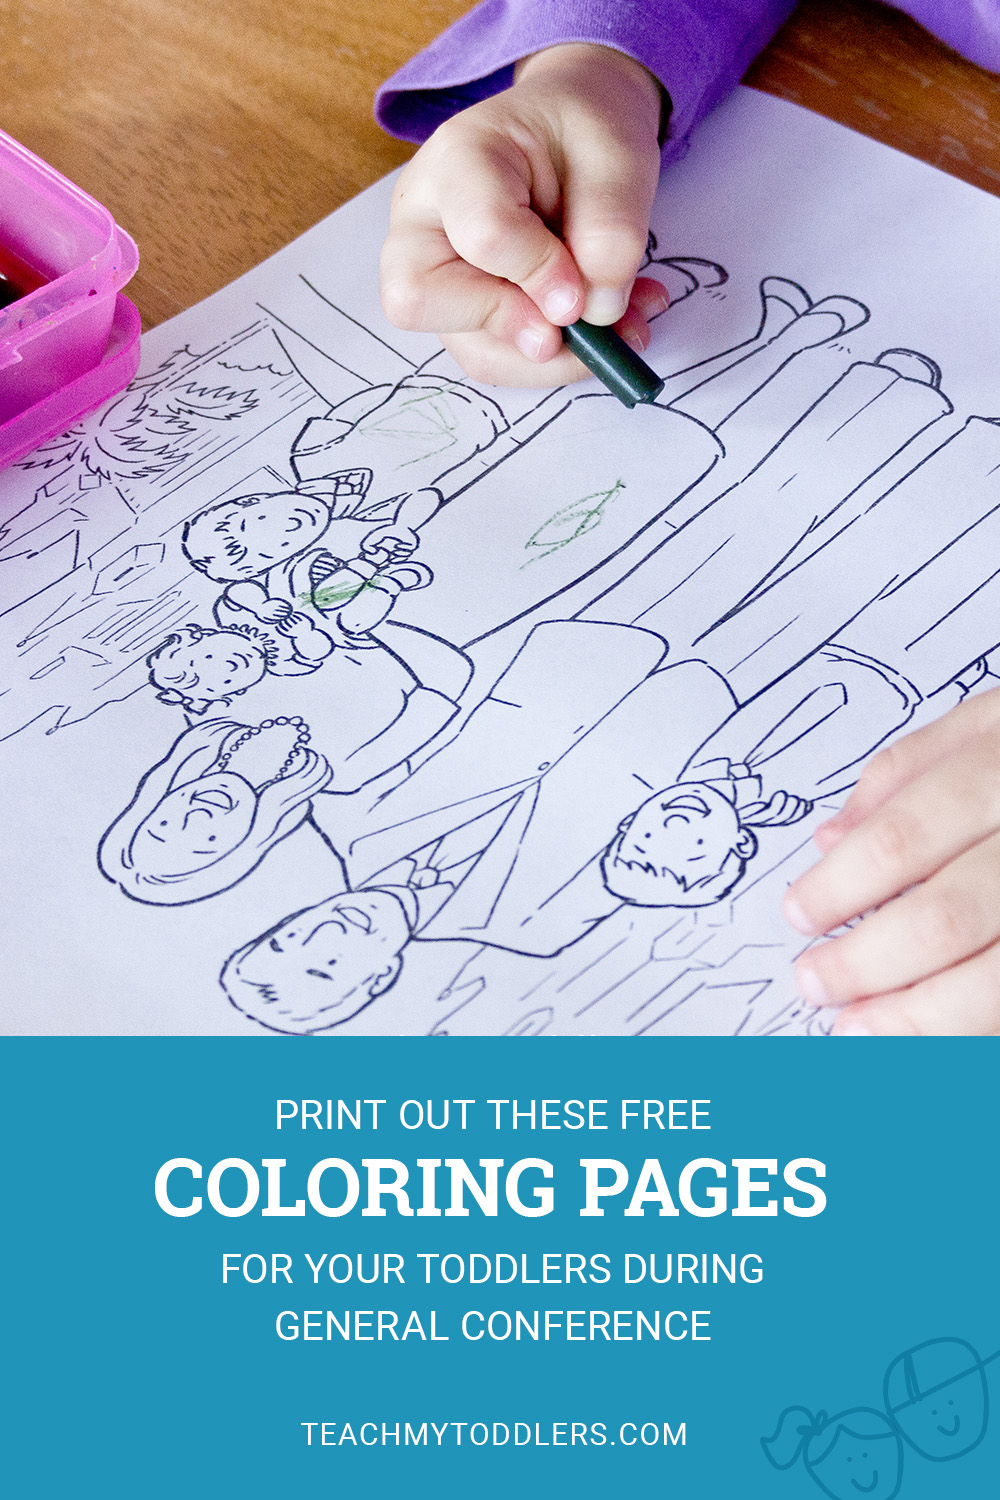 Print out these free coloring pages for your toddlers during general conference